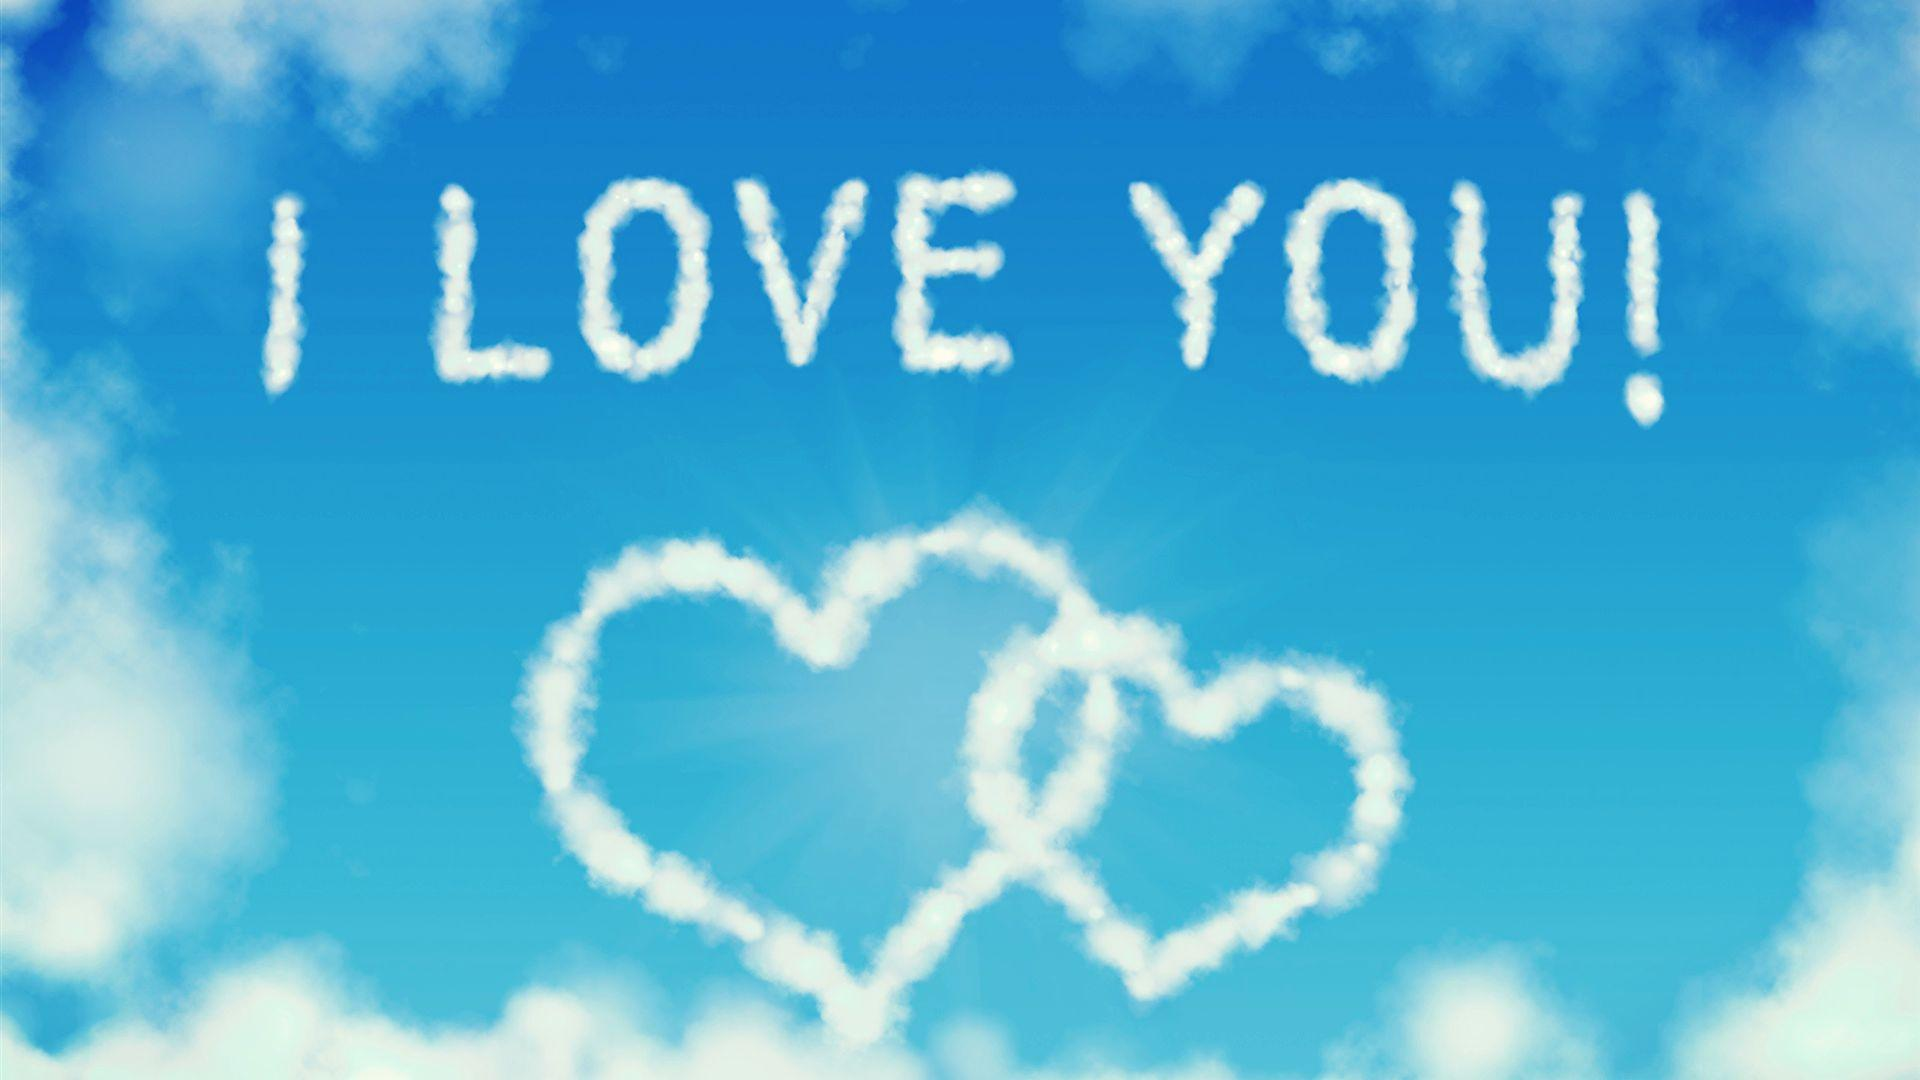 L Love U Hd Wallpaper : I Love You Wallpapers - Wallpaper cave